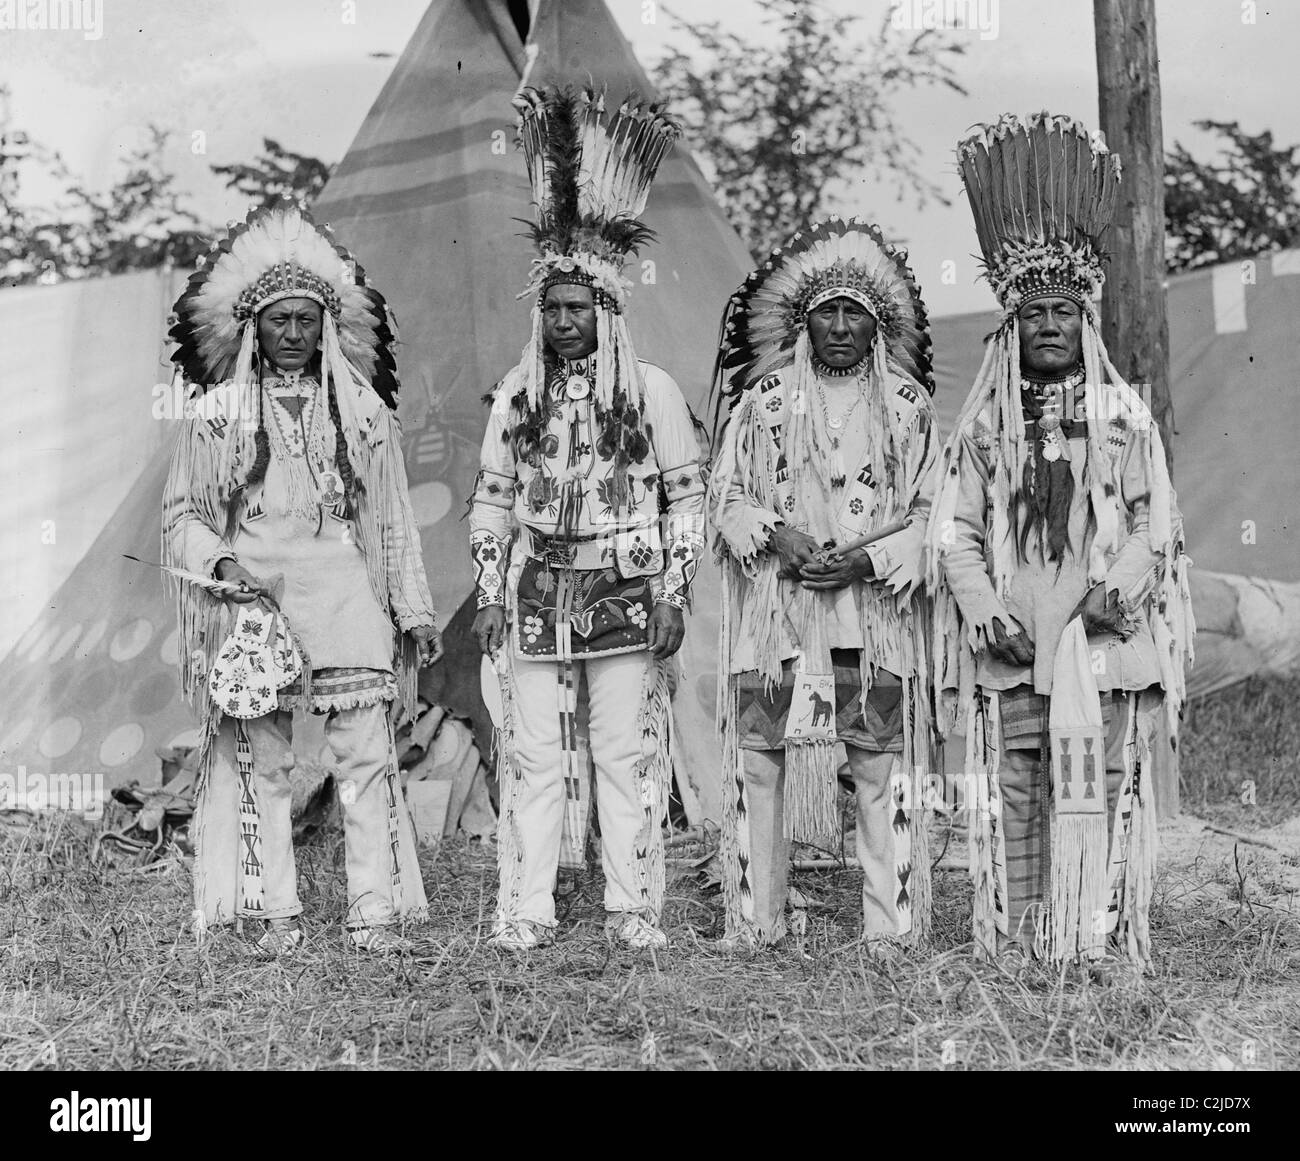 Four Native American Chiefs in Traditional Clothing and Feathered Bonnet - Stock Image